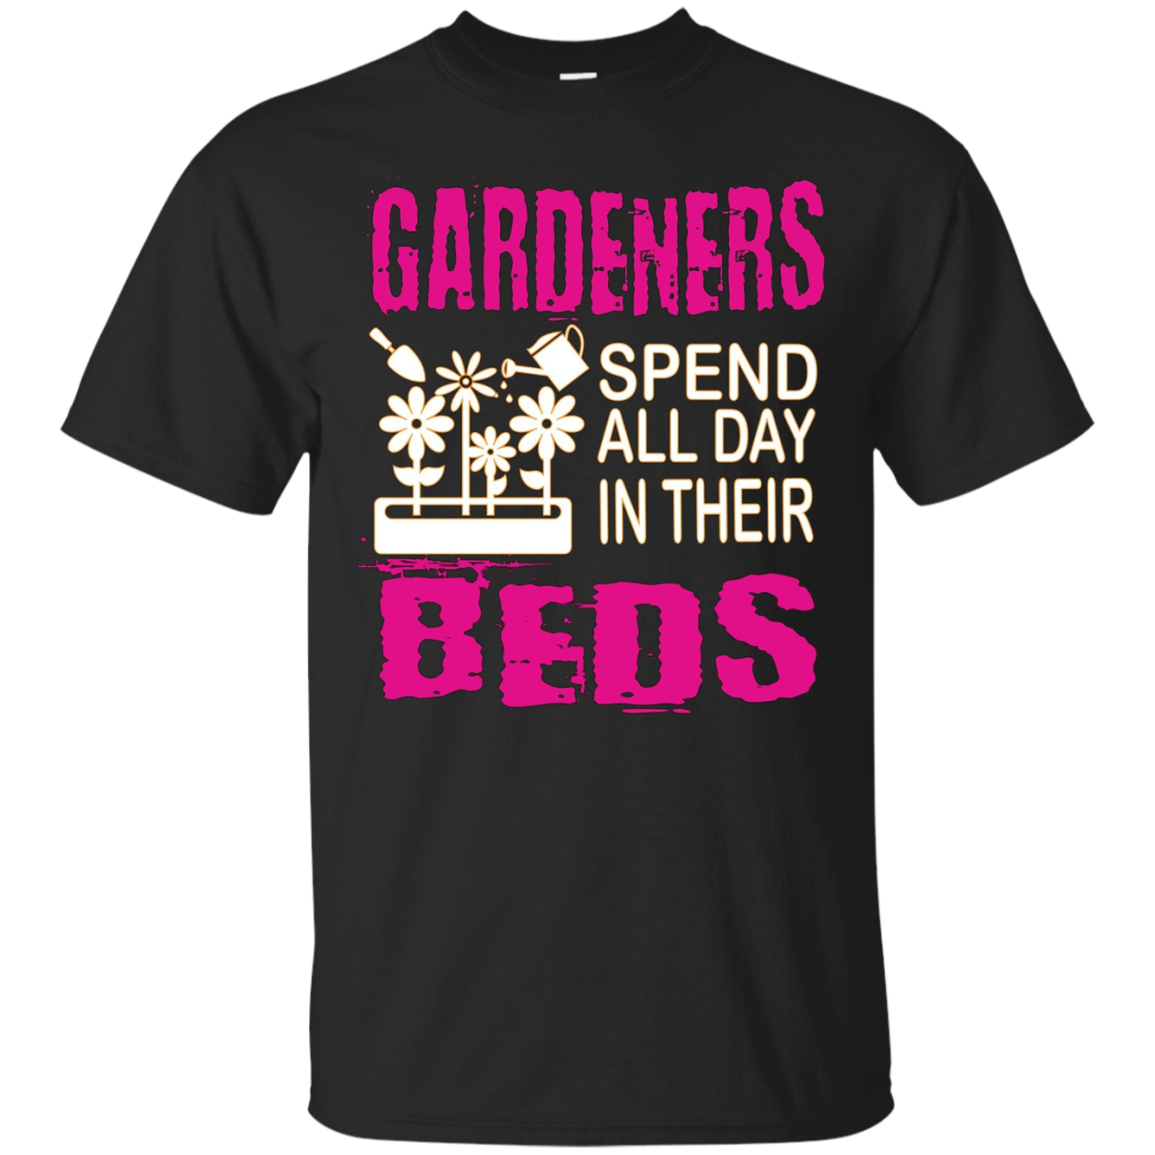 Gardening TShirts Women For Men